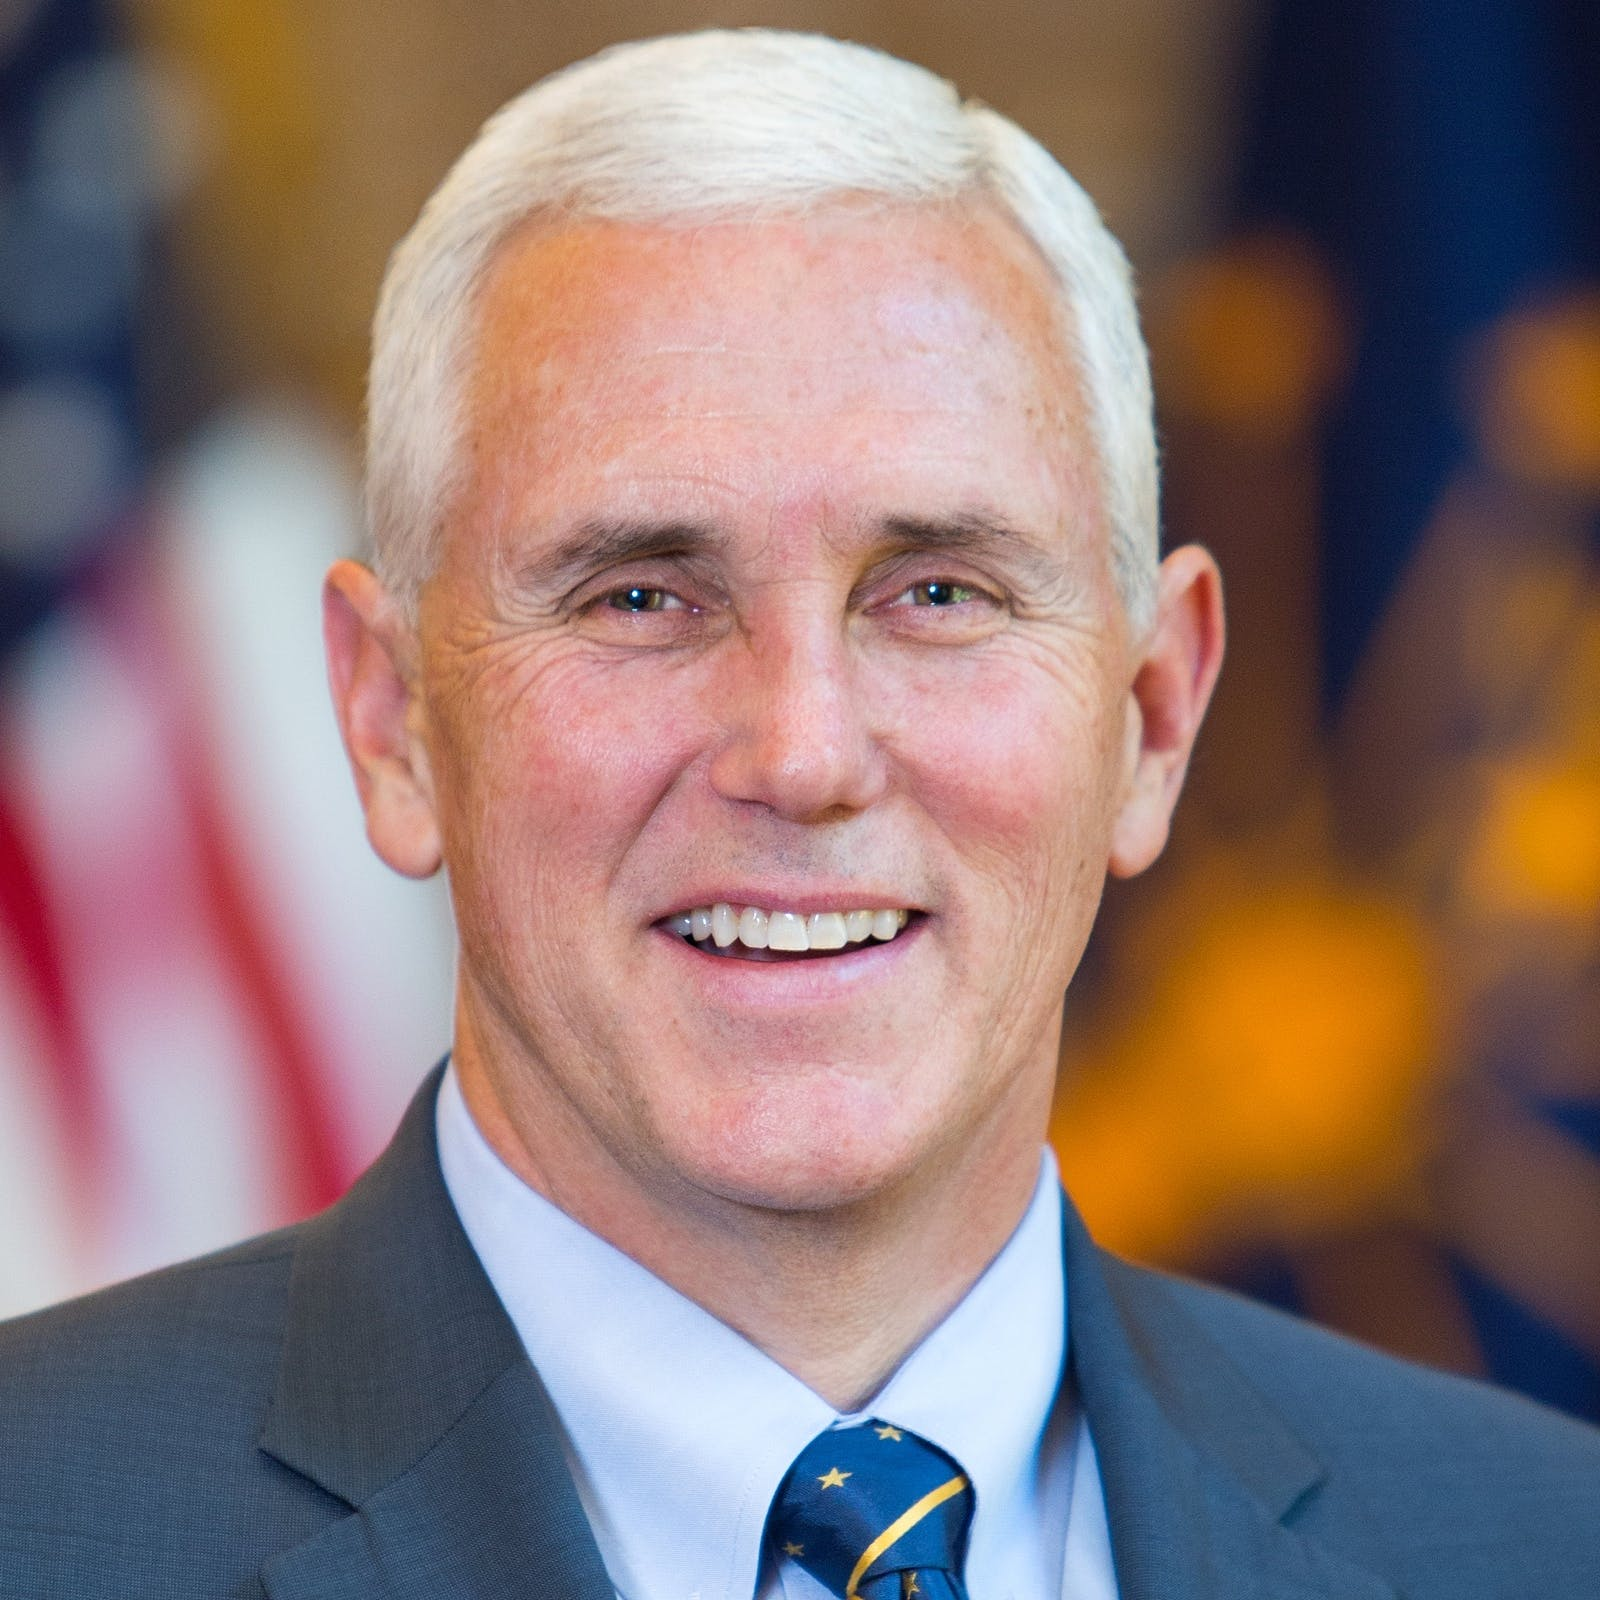 Vice President Mike Pence campaigning in Arizona on Friday